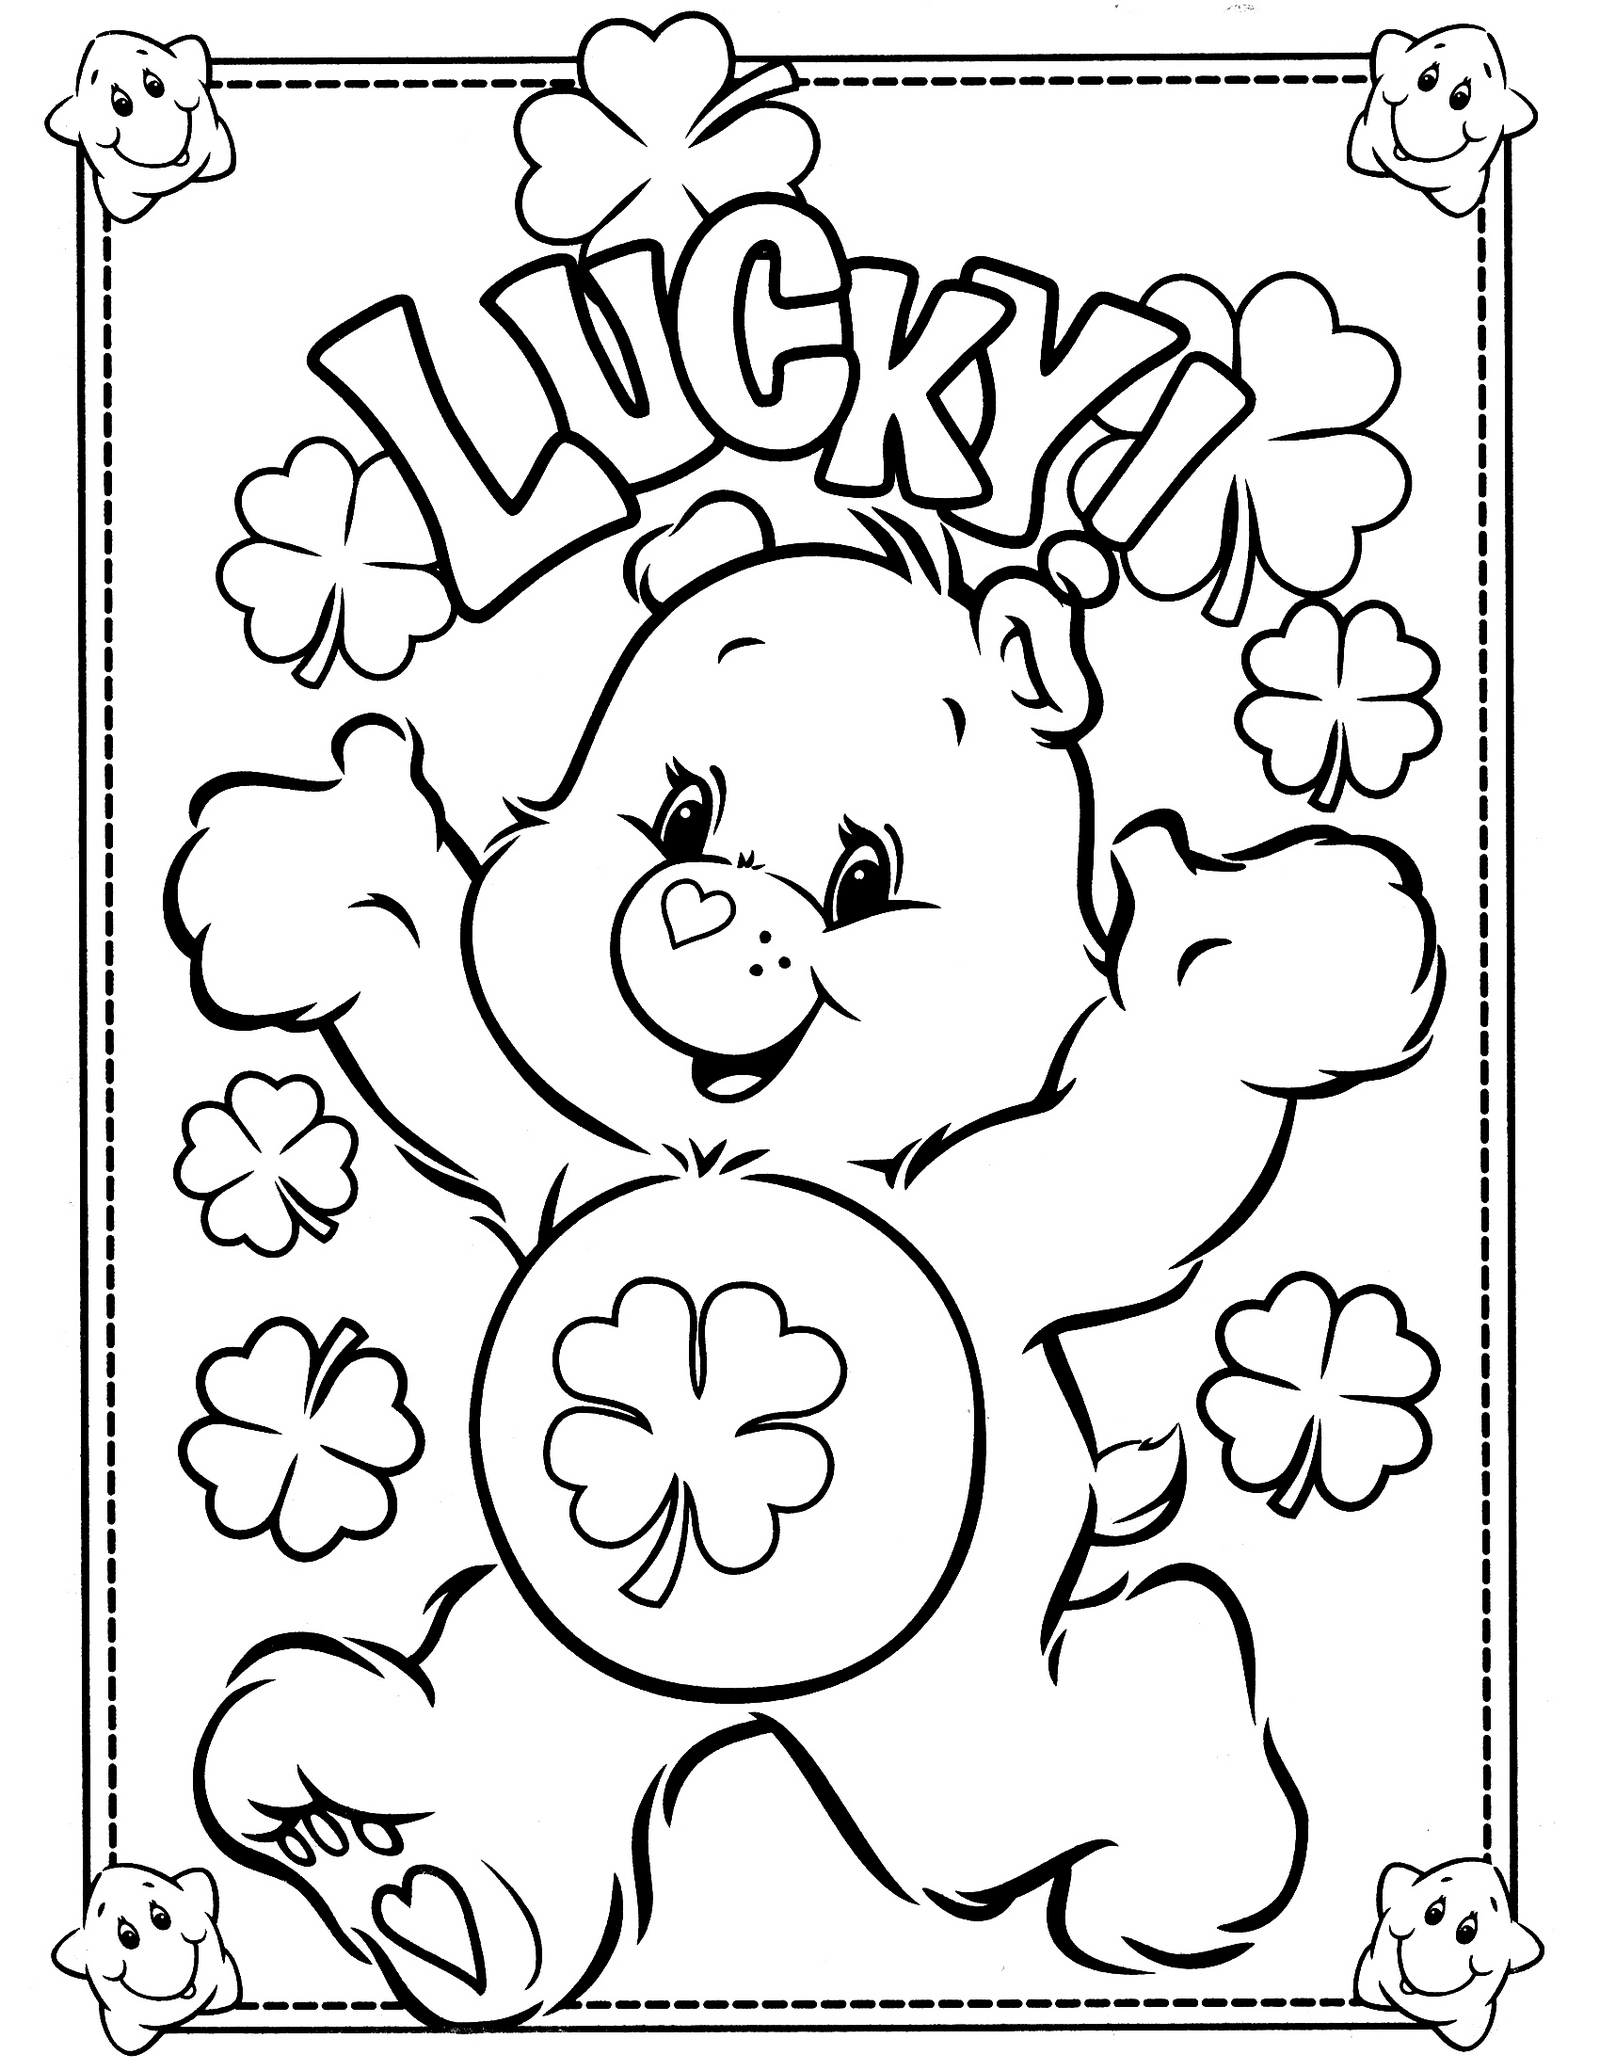 Lucky From Care Bears Coloring For Kids